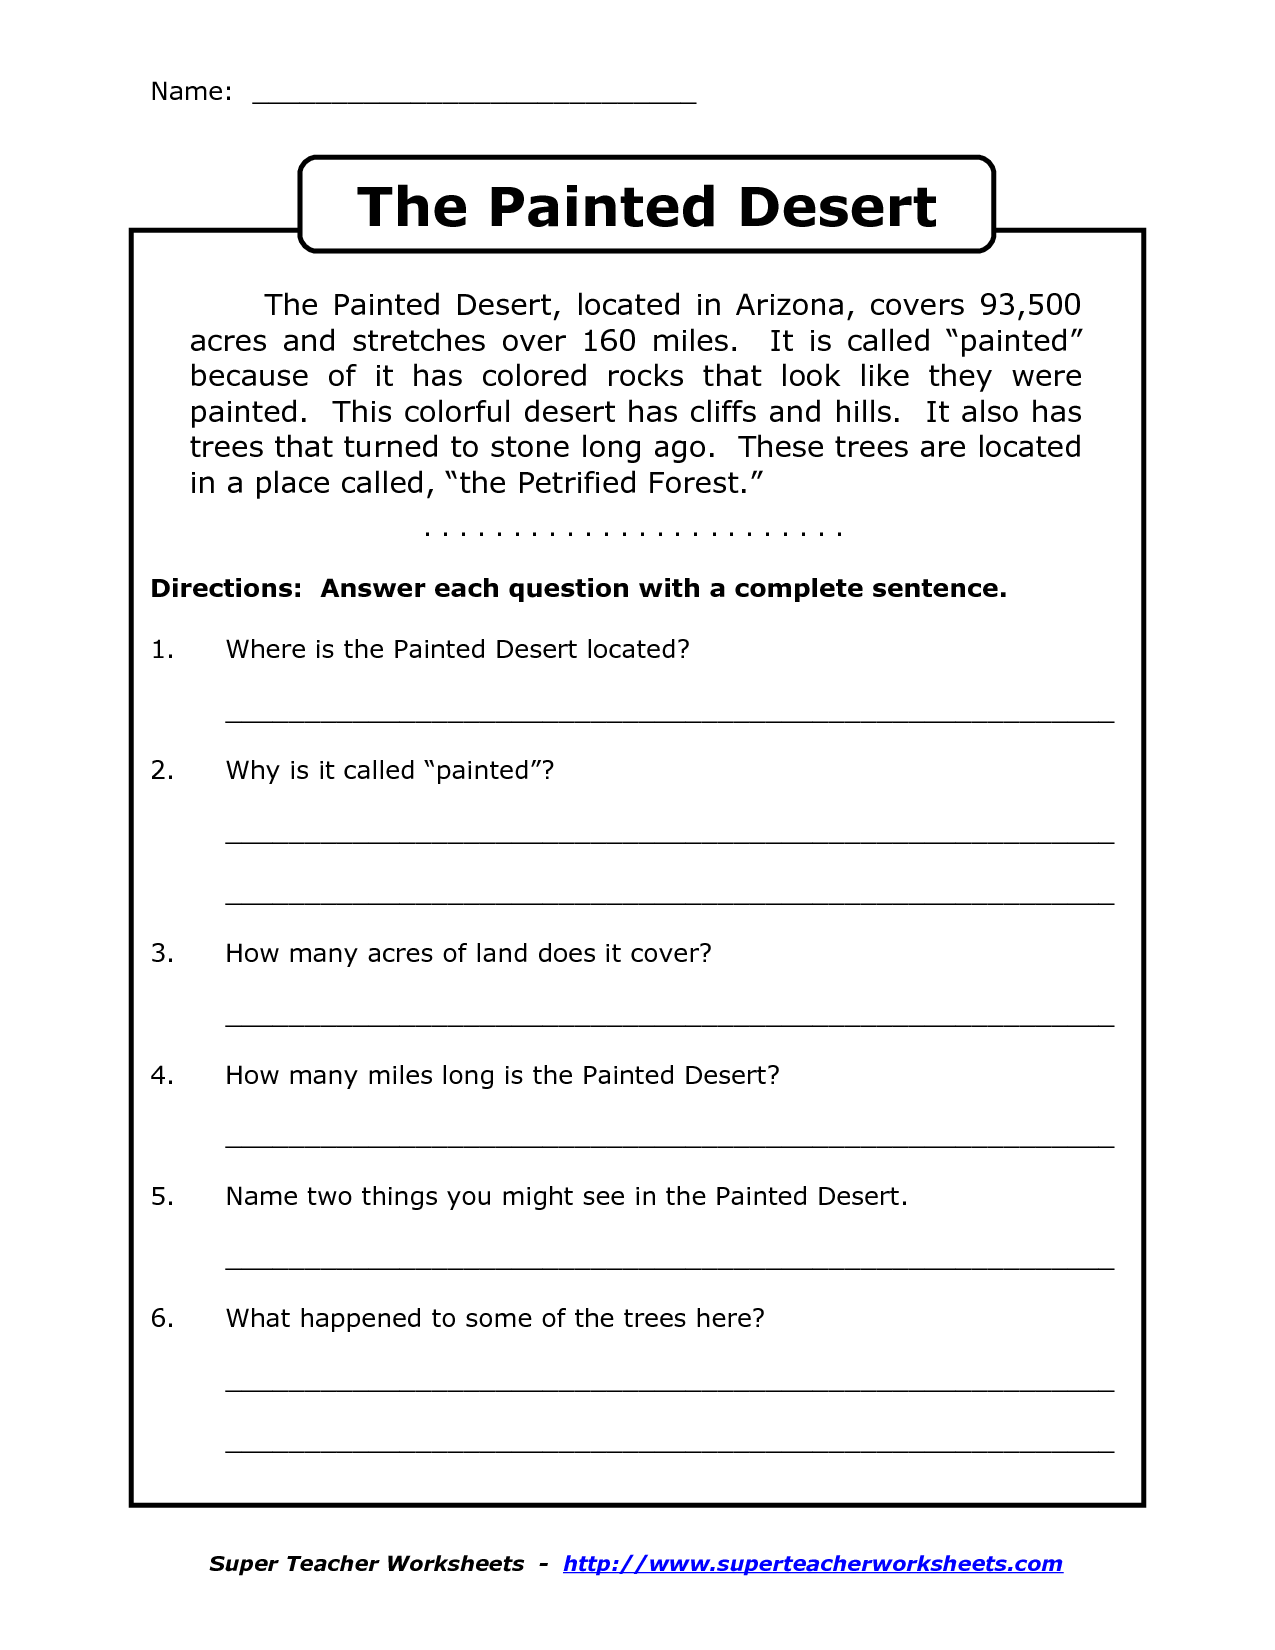 Worksheets Www.reading Comprehension Worksheets reading worksheets for 4th grade comprehension 3 name the painted desert